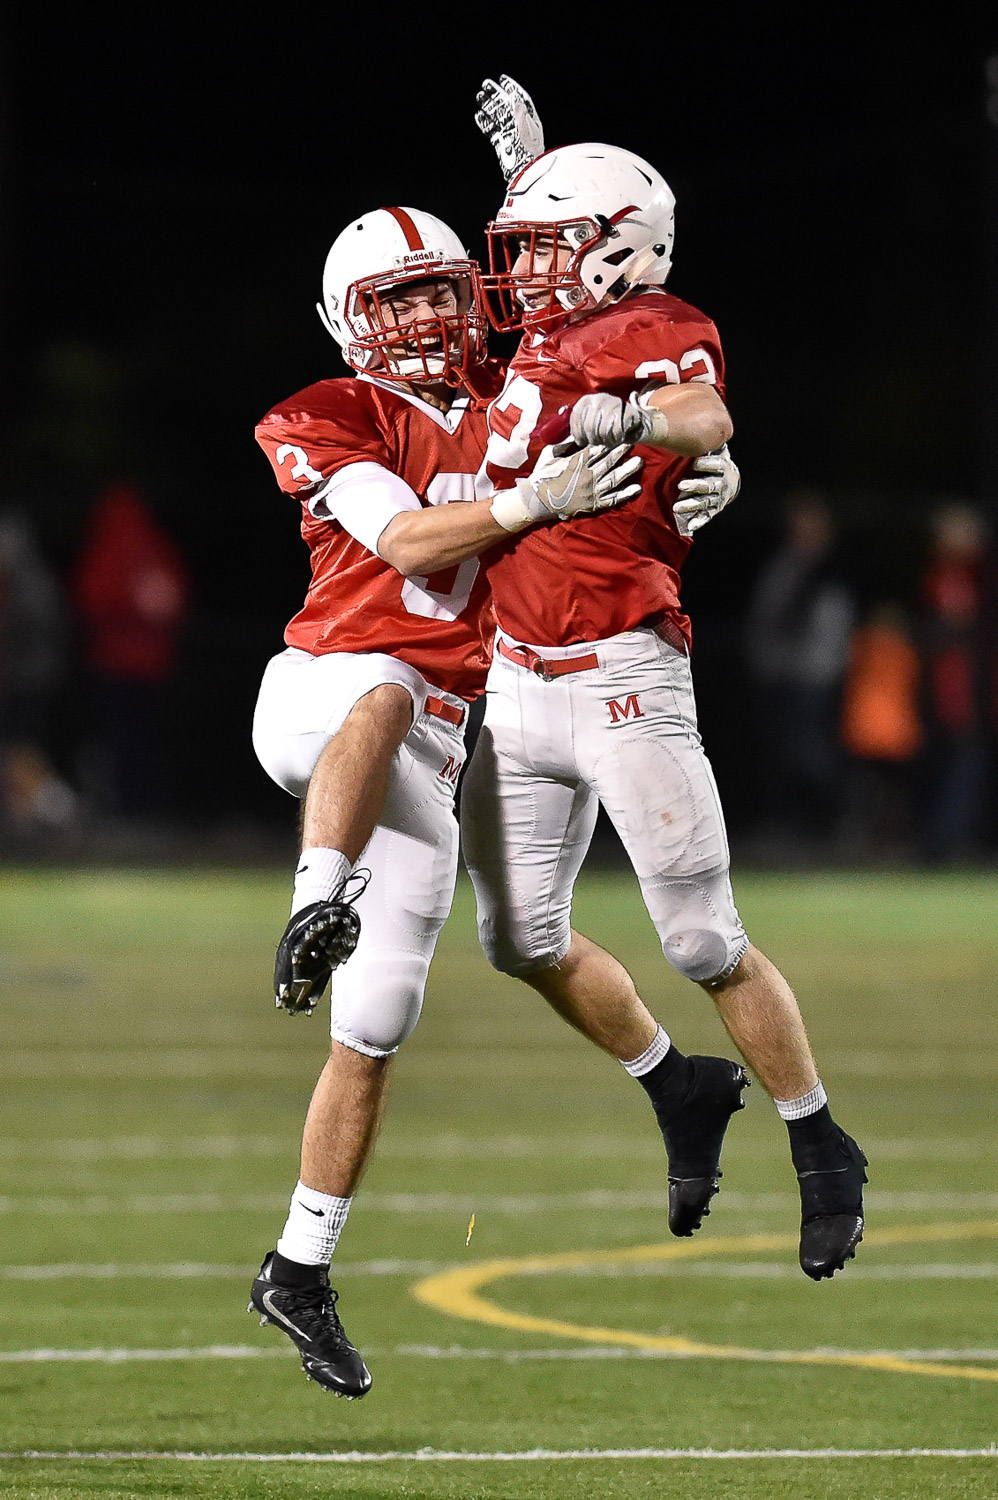 Nikon D4s, 1/1250 @ f/2.8, ISO 8000, 300mm Louis Izzi Jr. and Colin Kiernan of Melrose celebrate at the conclusion of their 14-10 win over Dracut at Melrose High School, Friday, Oct. 27, 2017.